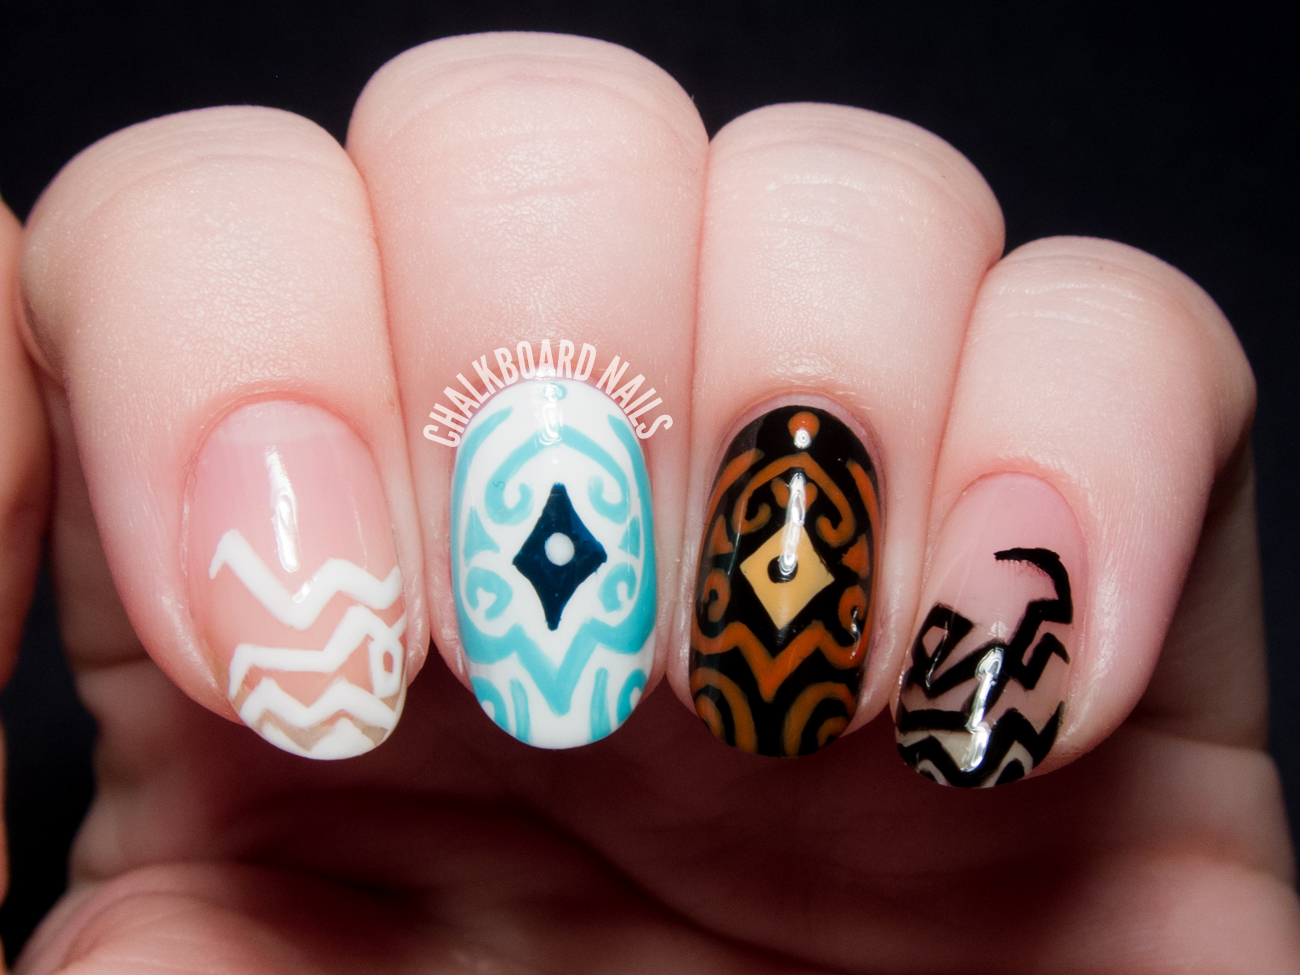 Raava and Vaatu nail art by @chalkboardnails